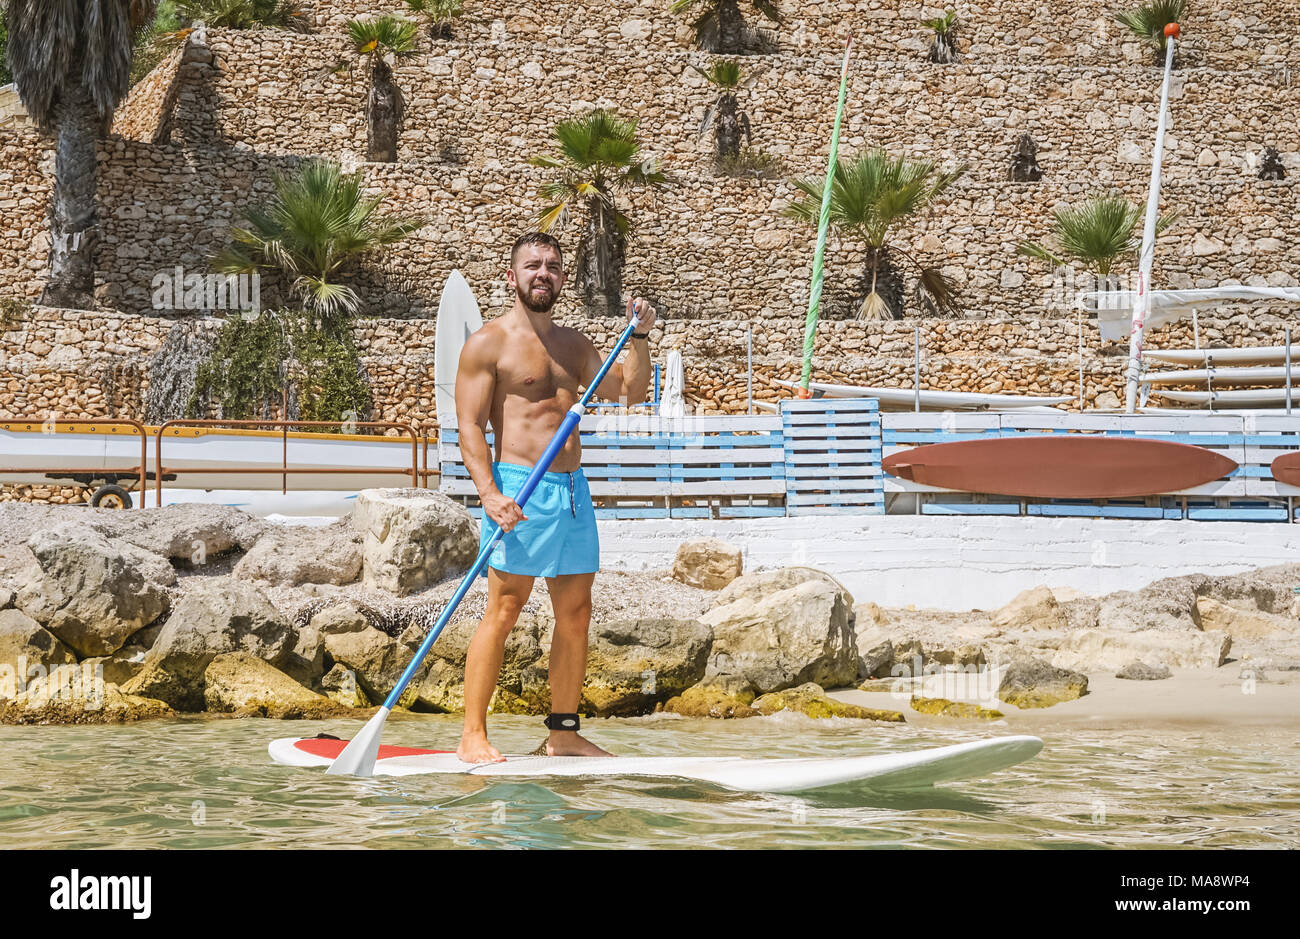 Paddleboard beach man stand up on paddle board and learns surfing. Summer active vacation and water sport concept - Stock Image